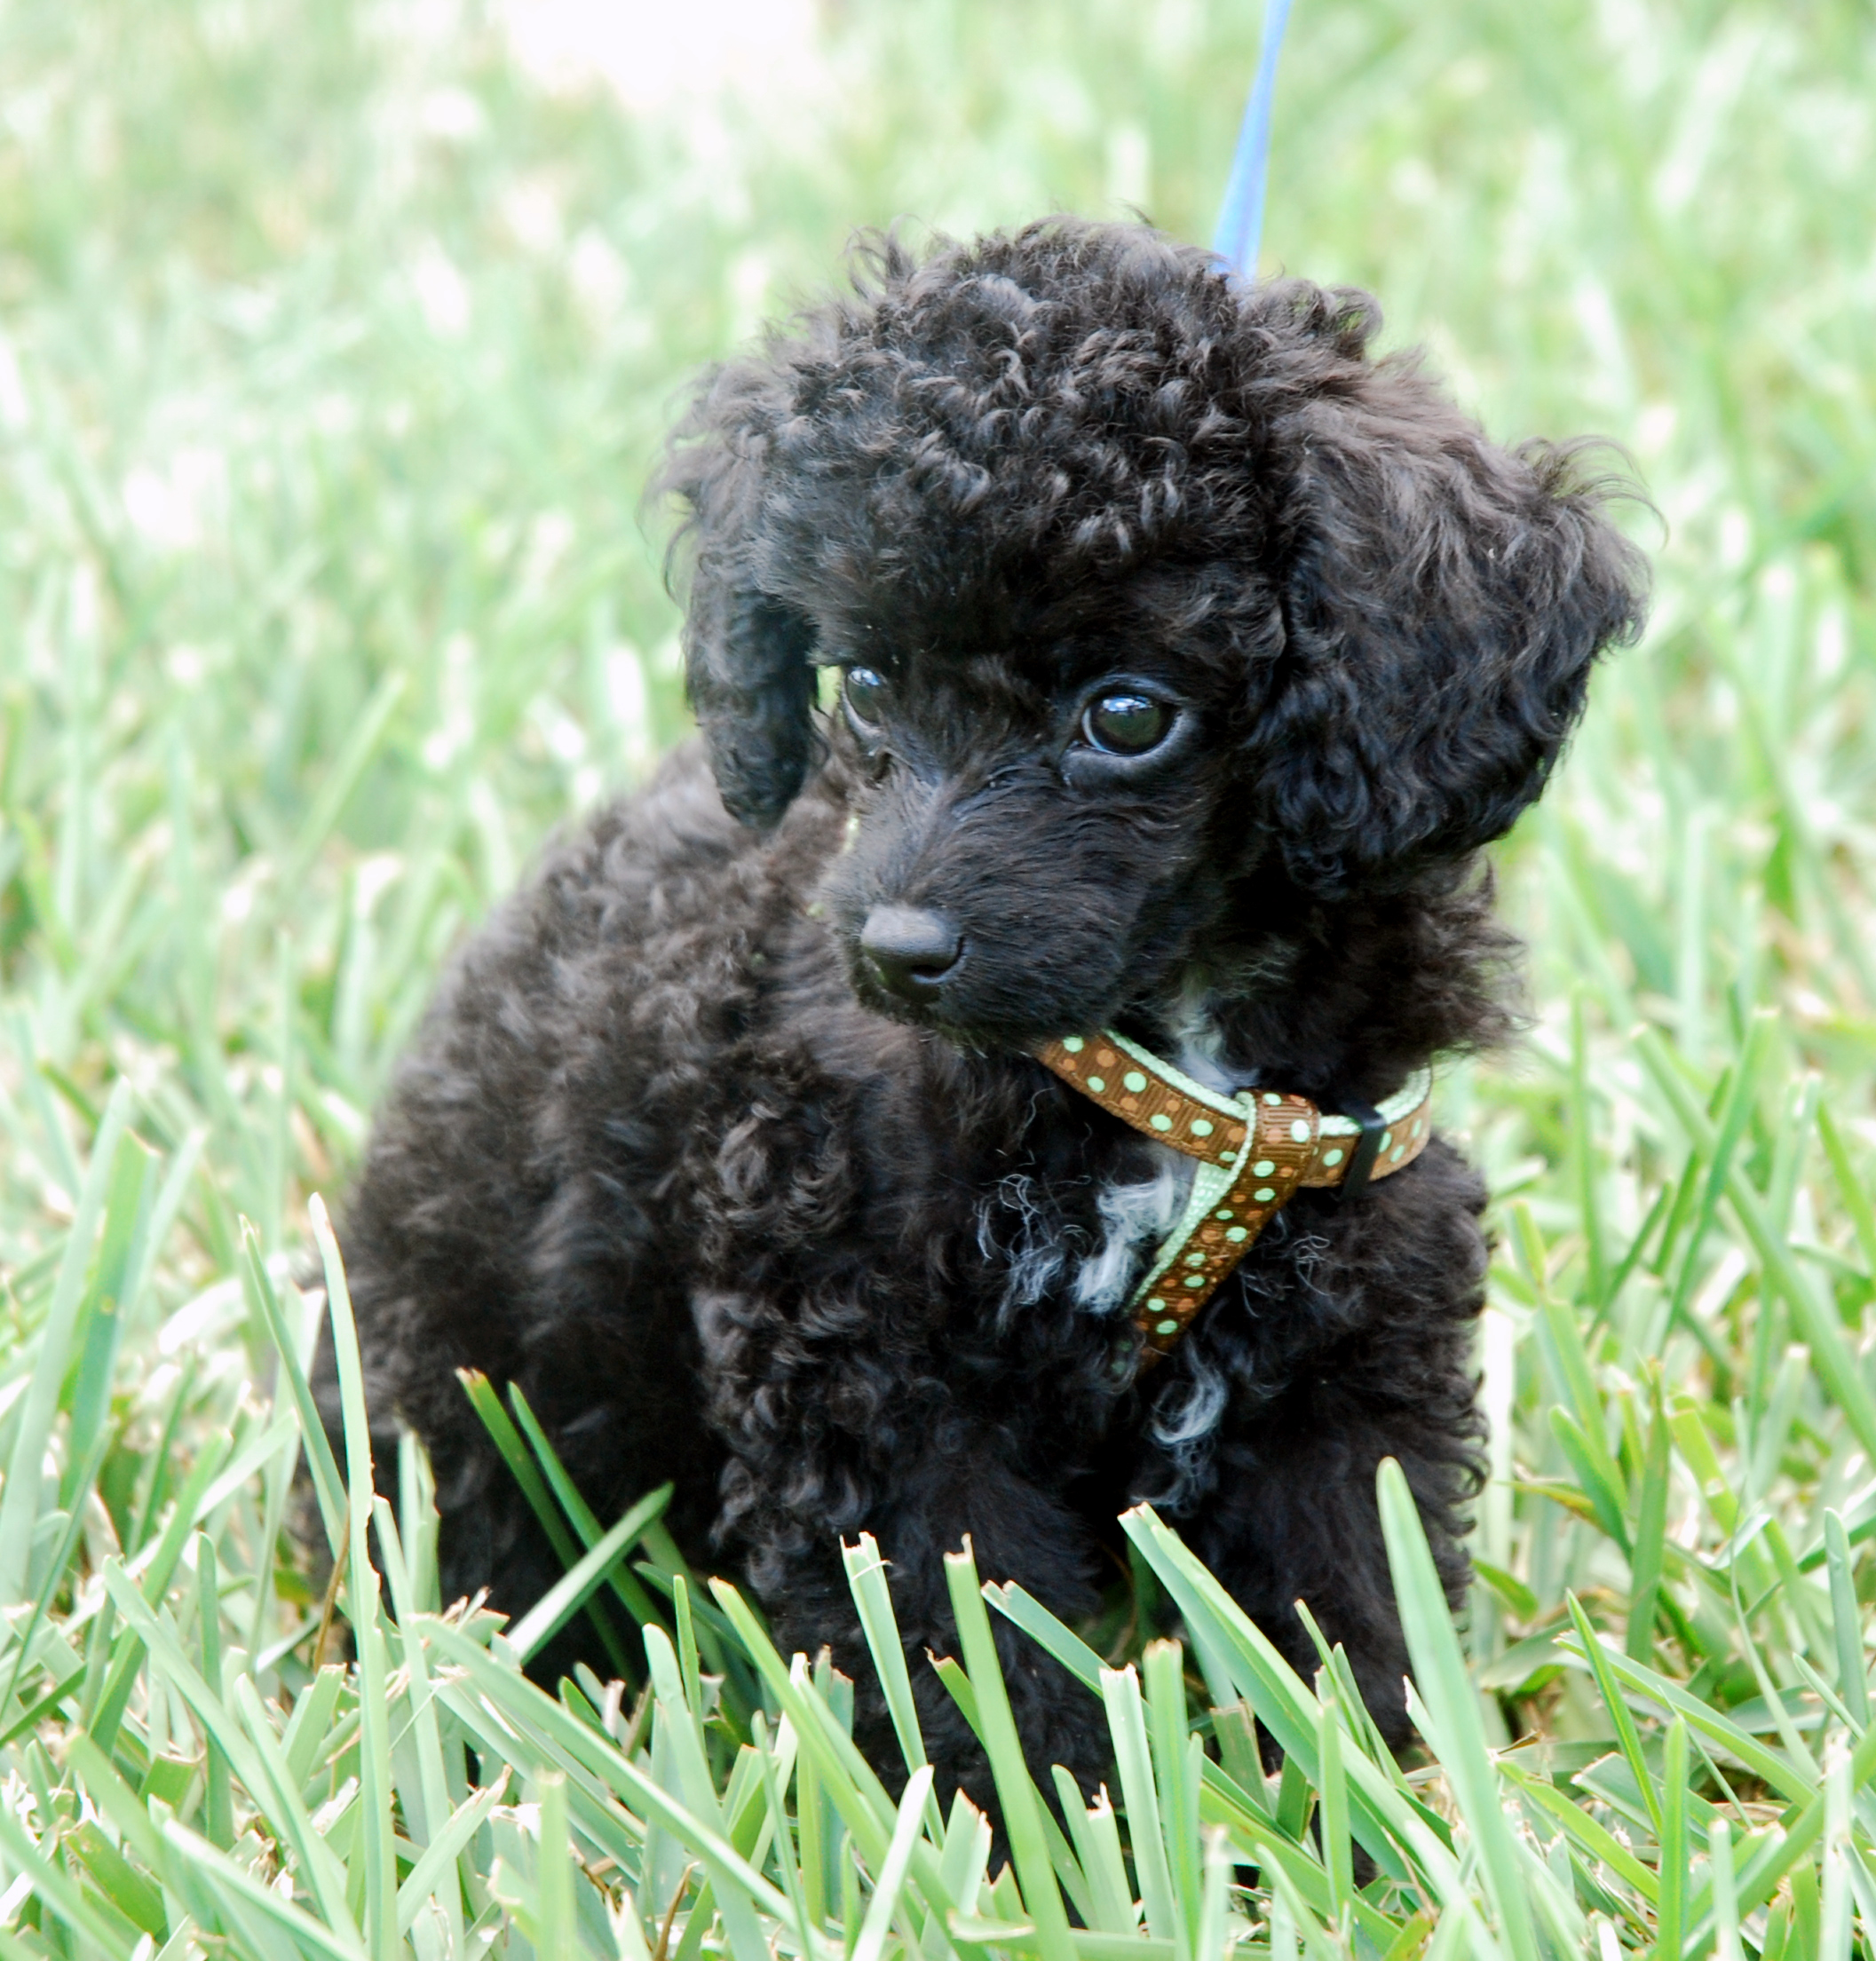 miniature poodle puppies adopt a miniature poodle dog